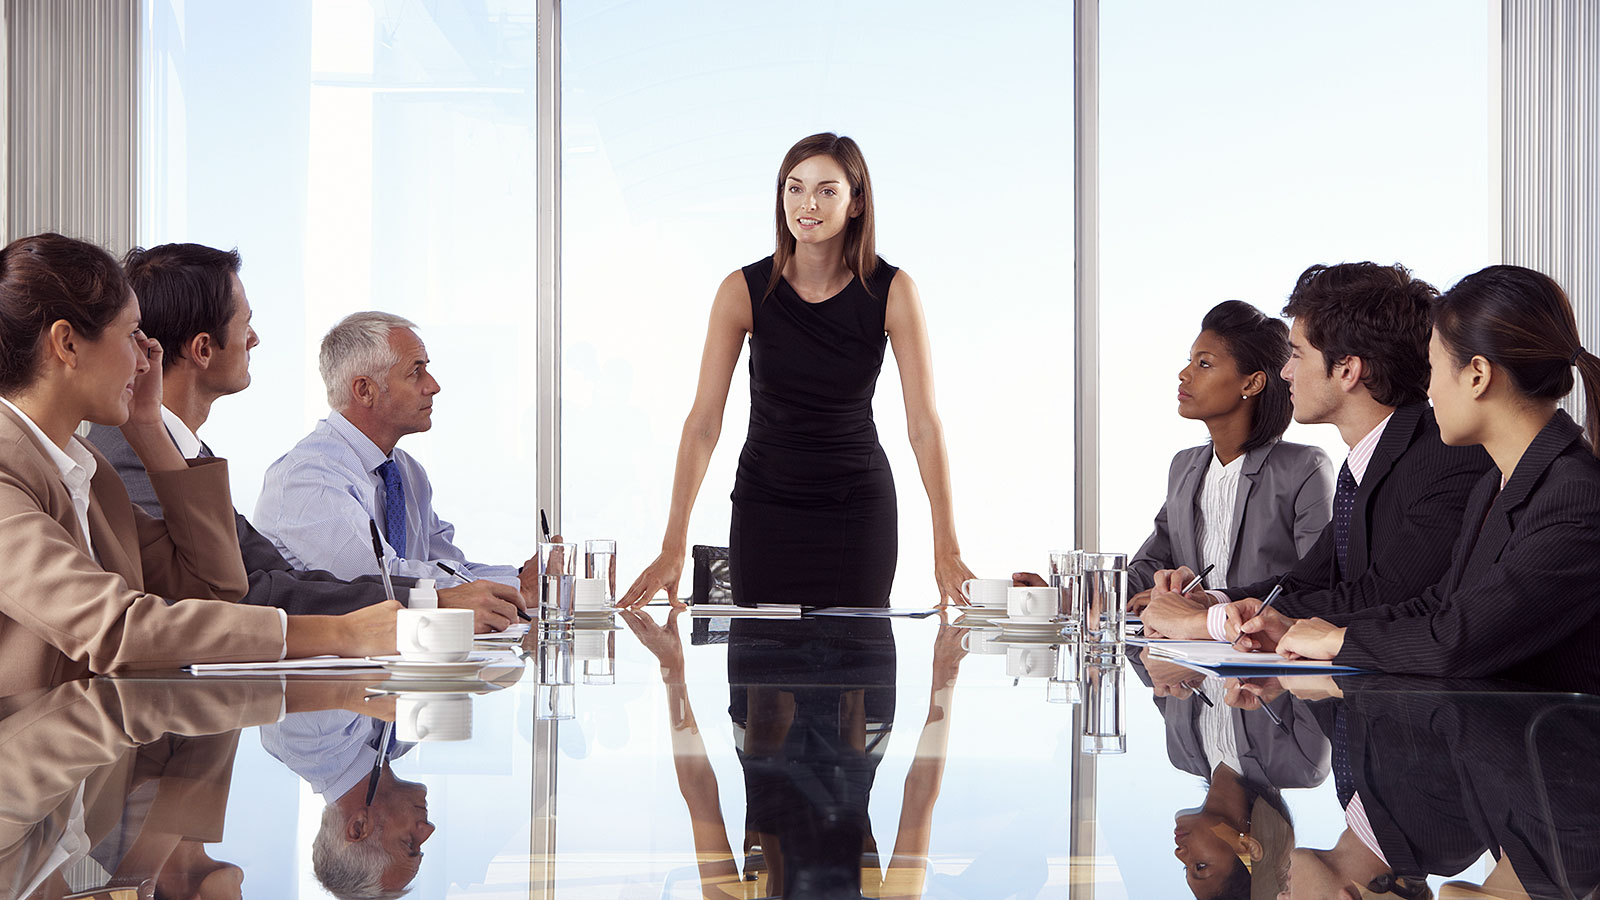 4 key ways to have better executive presence